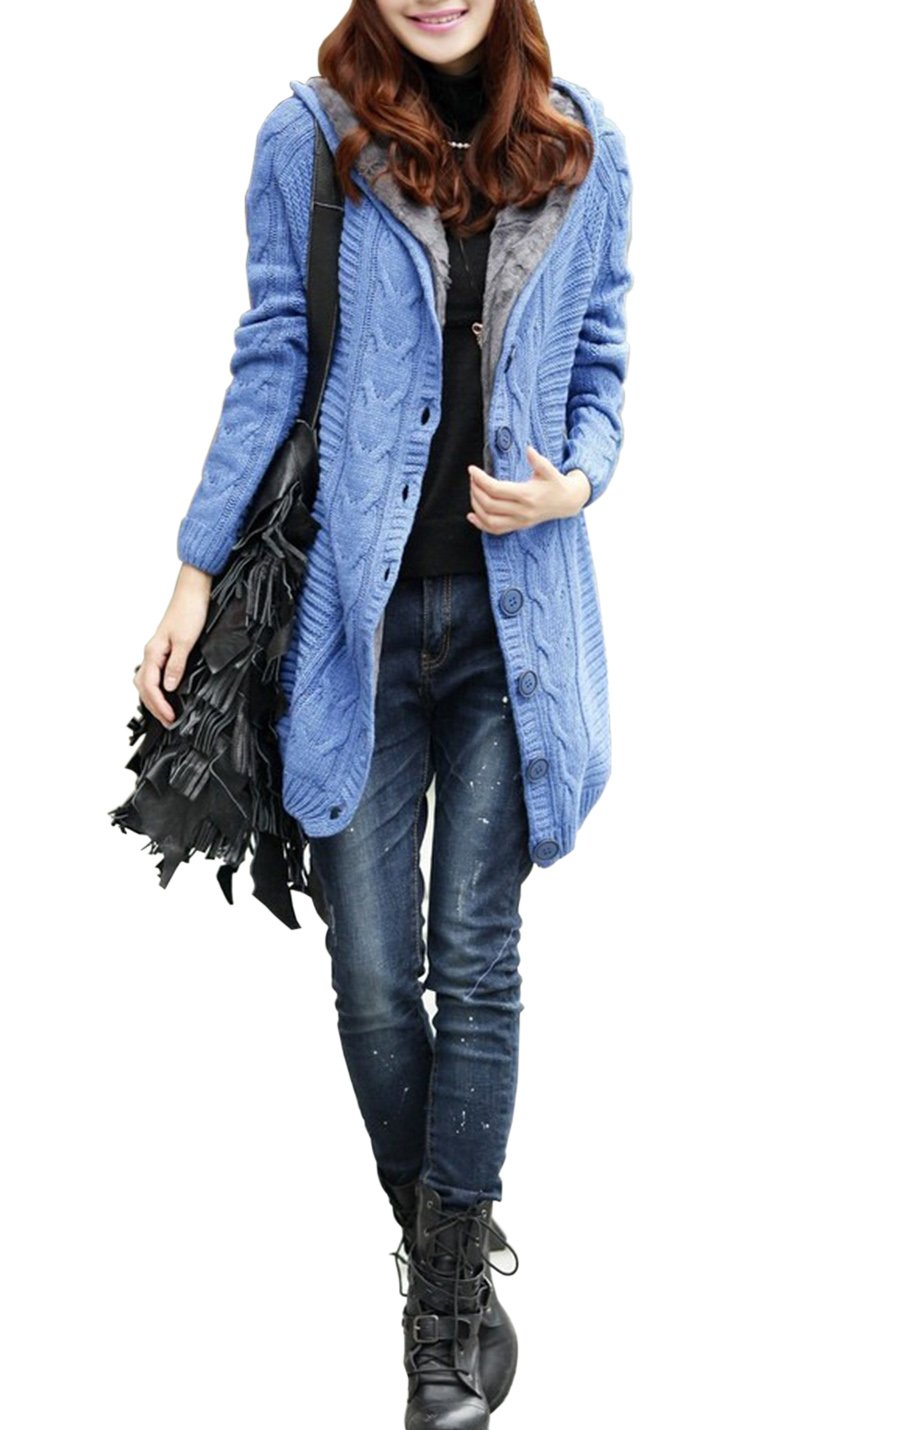 Women's Cable Knit Hooded Cardigan Fleece Lined Sweater Trench Coat